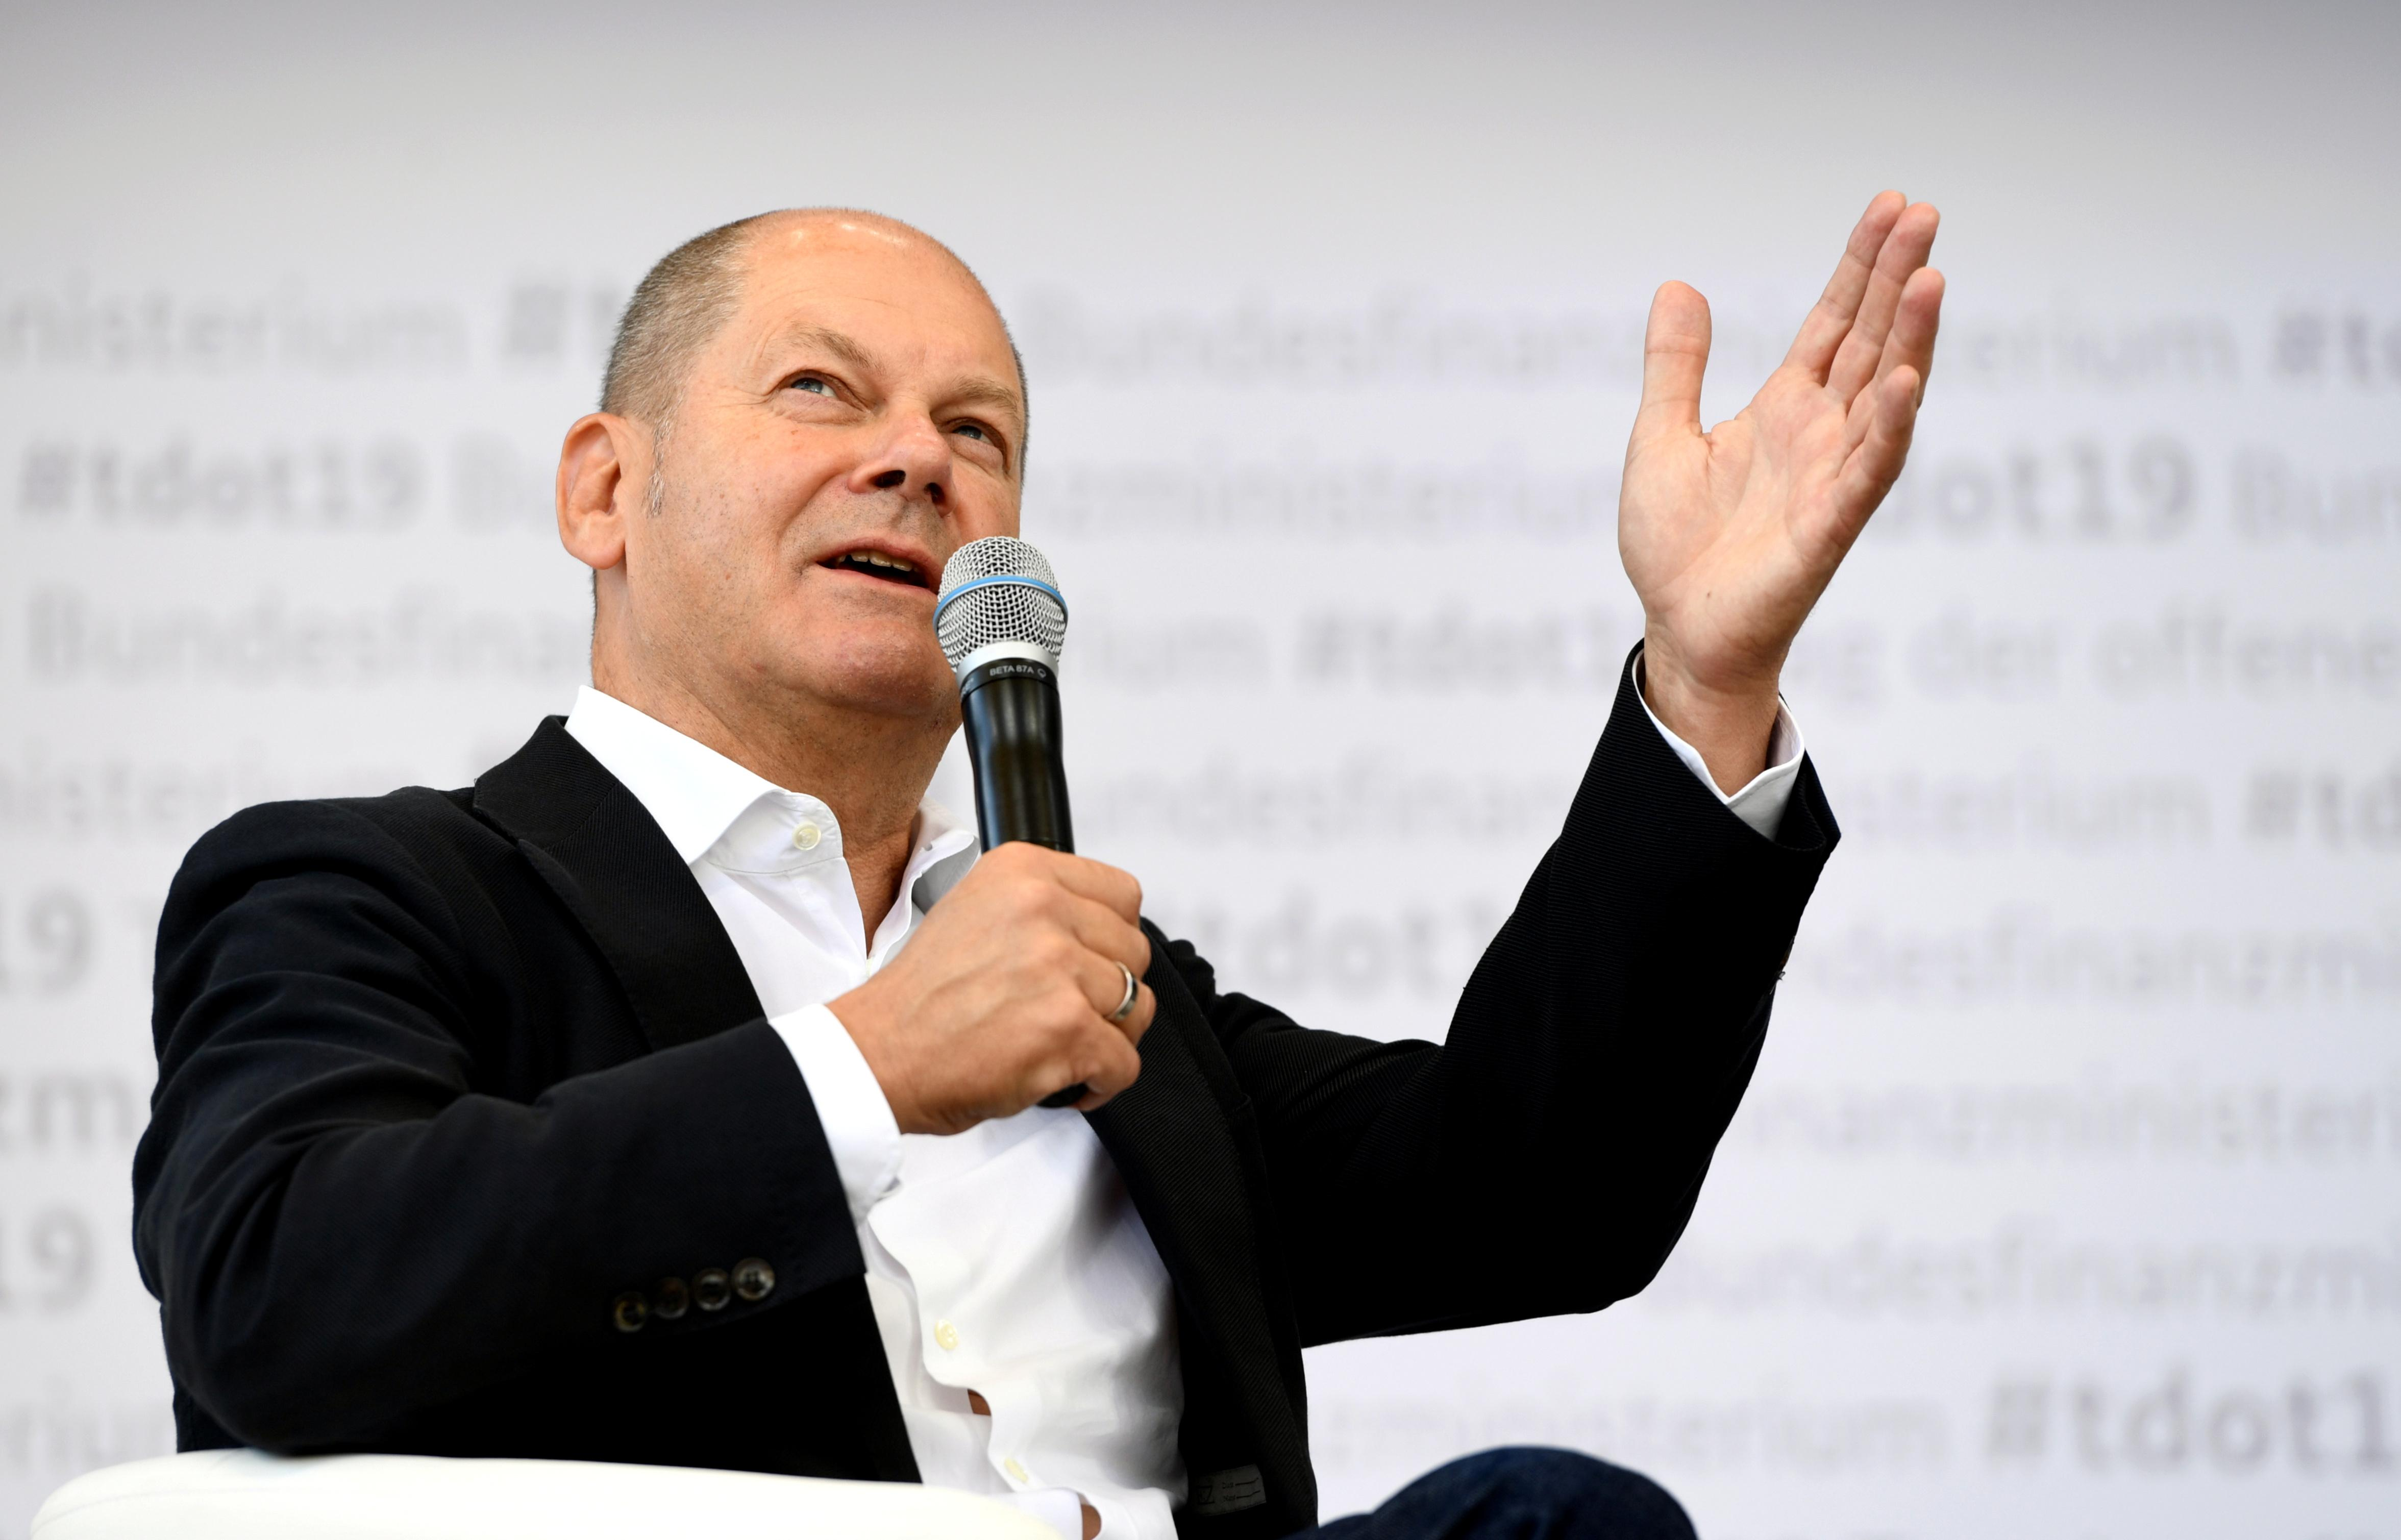 Germany has fiscal muscle to counter next crisis: Scholz